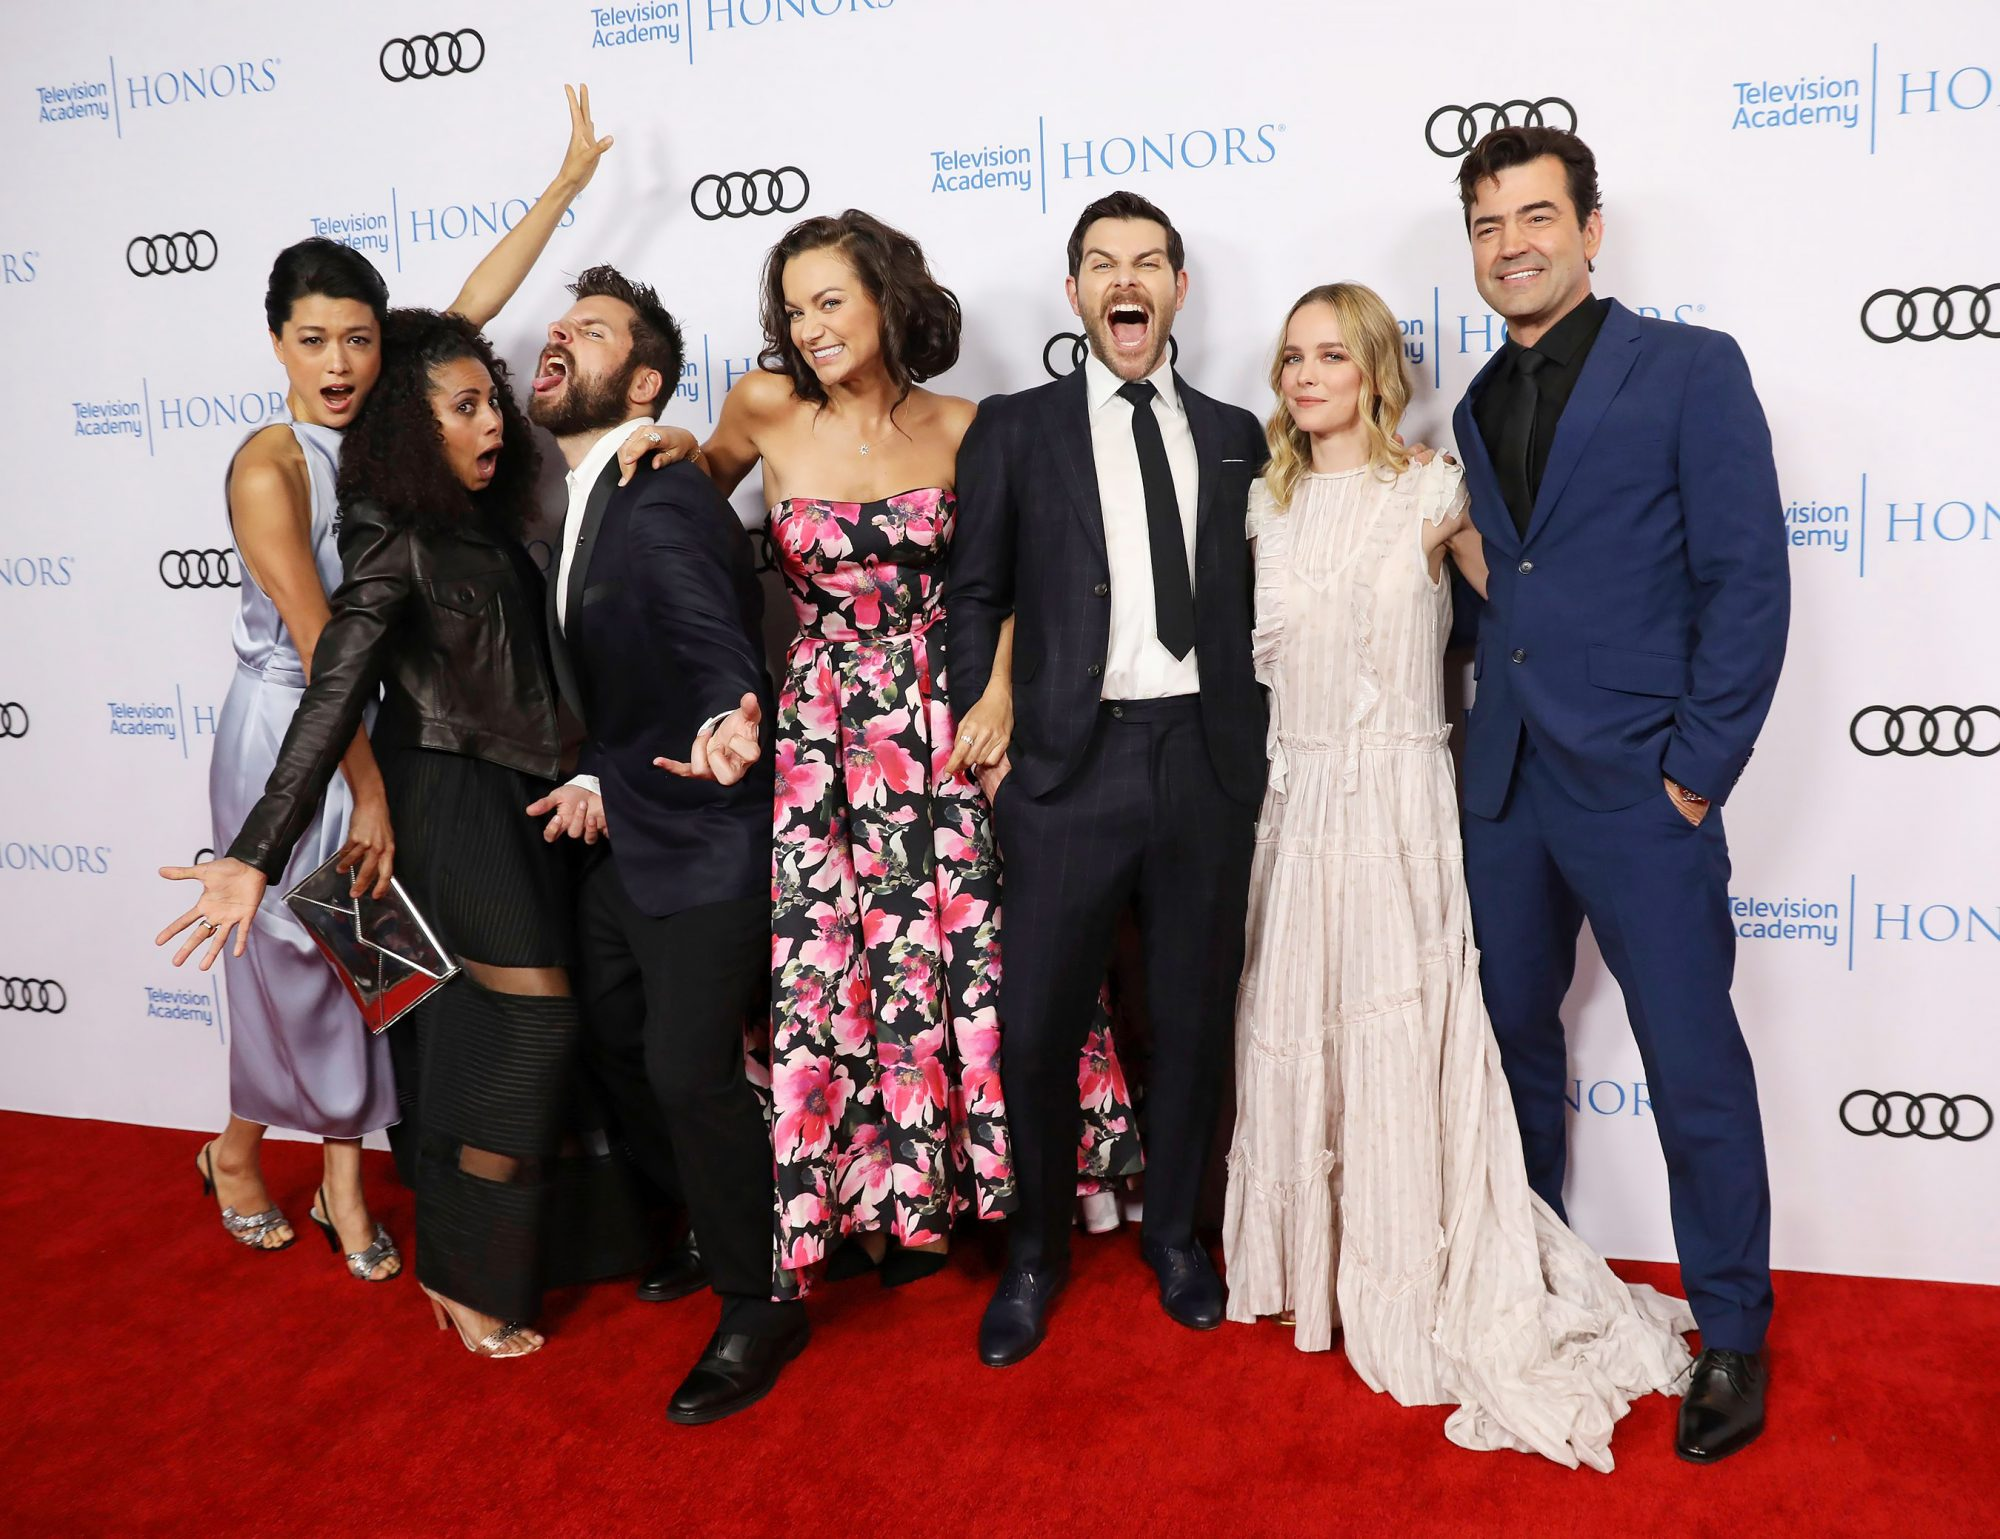 Grace Park, from left, Christina Moses, James Roday, Christina Ochoa, David Giuntoli, Allison Miller, Ron Livingston